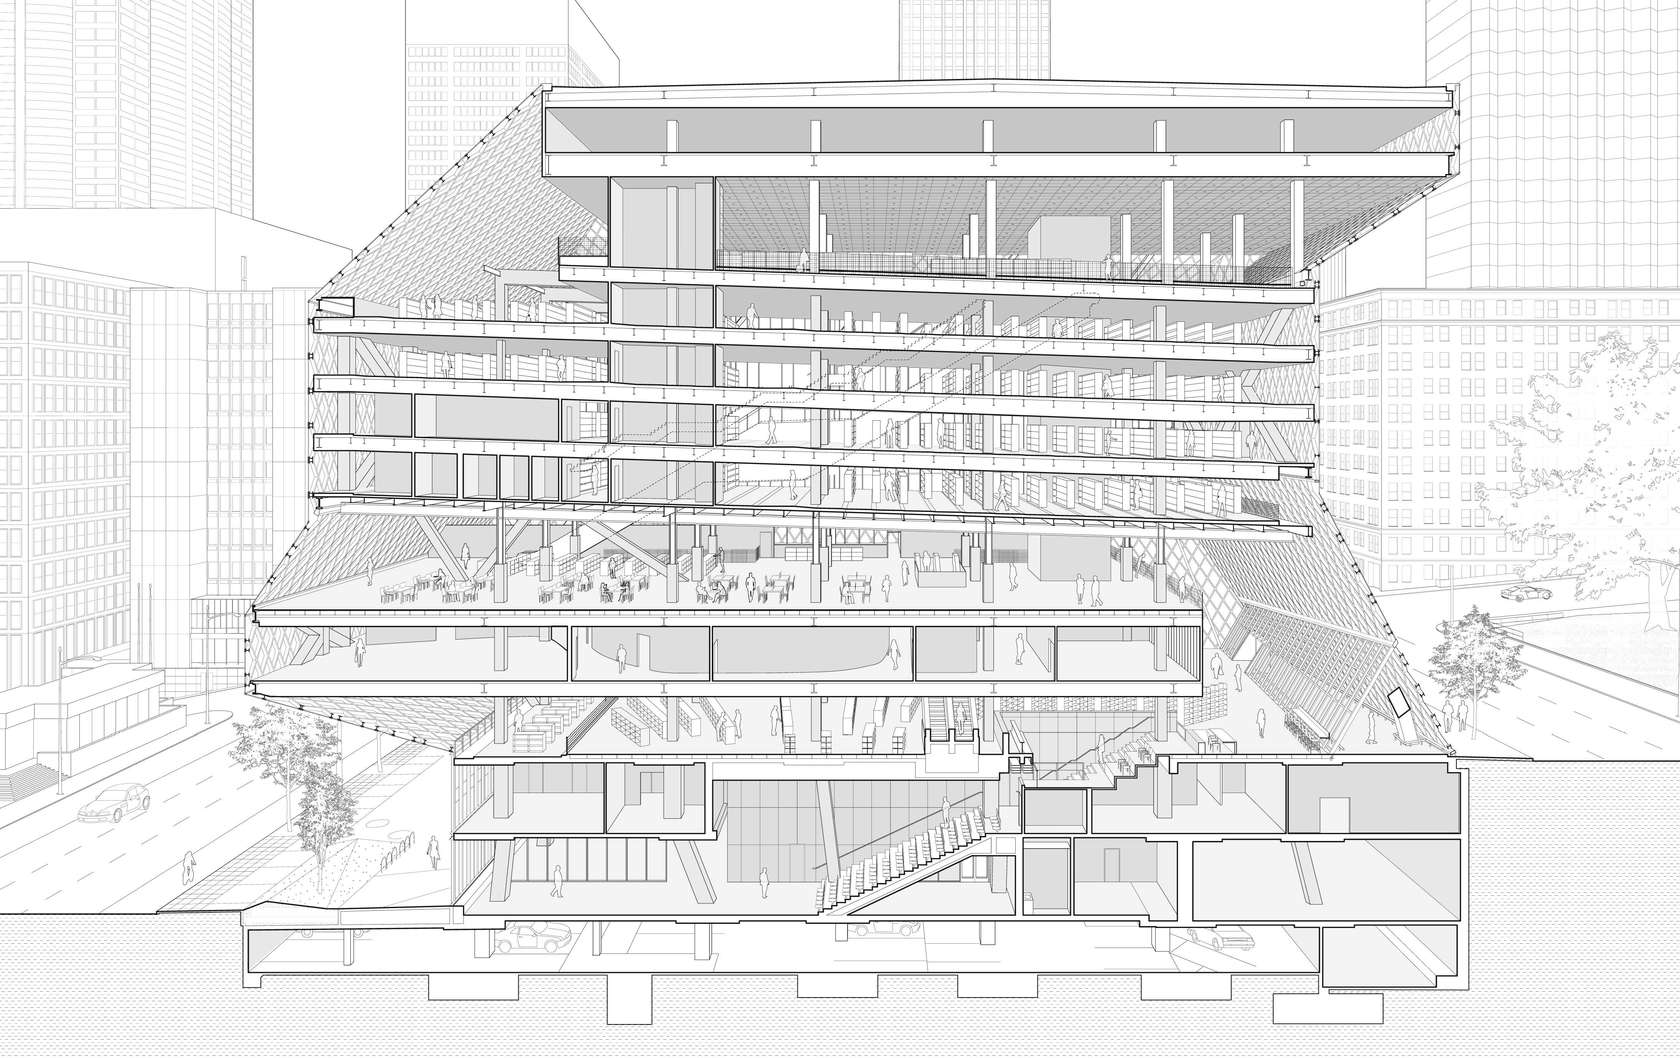 Seattle Central Library. OMA + LMN, USA (2009)